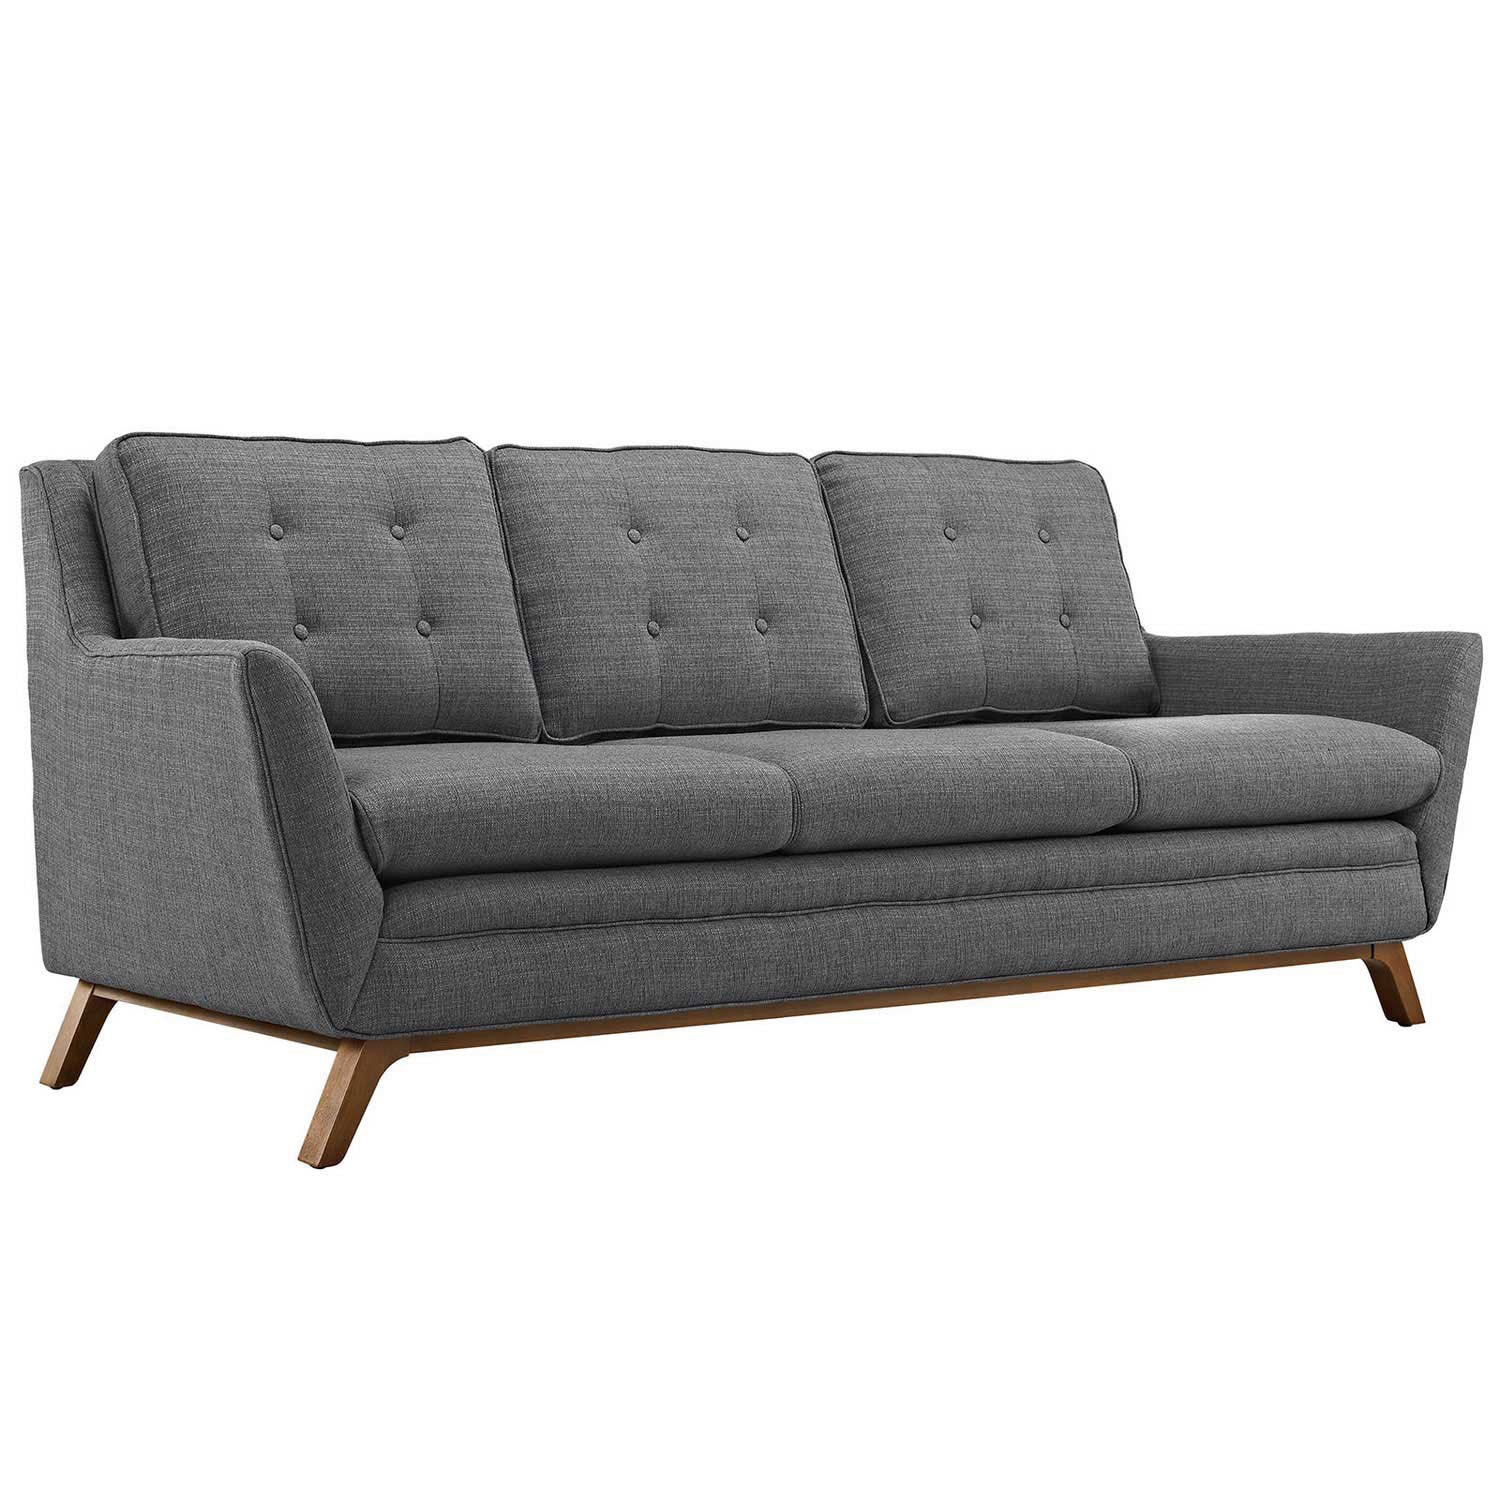 Modway Beguile Fabric Sofa - Gray